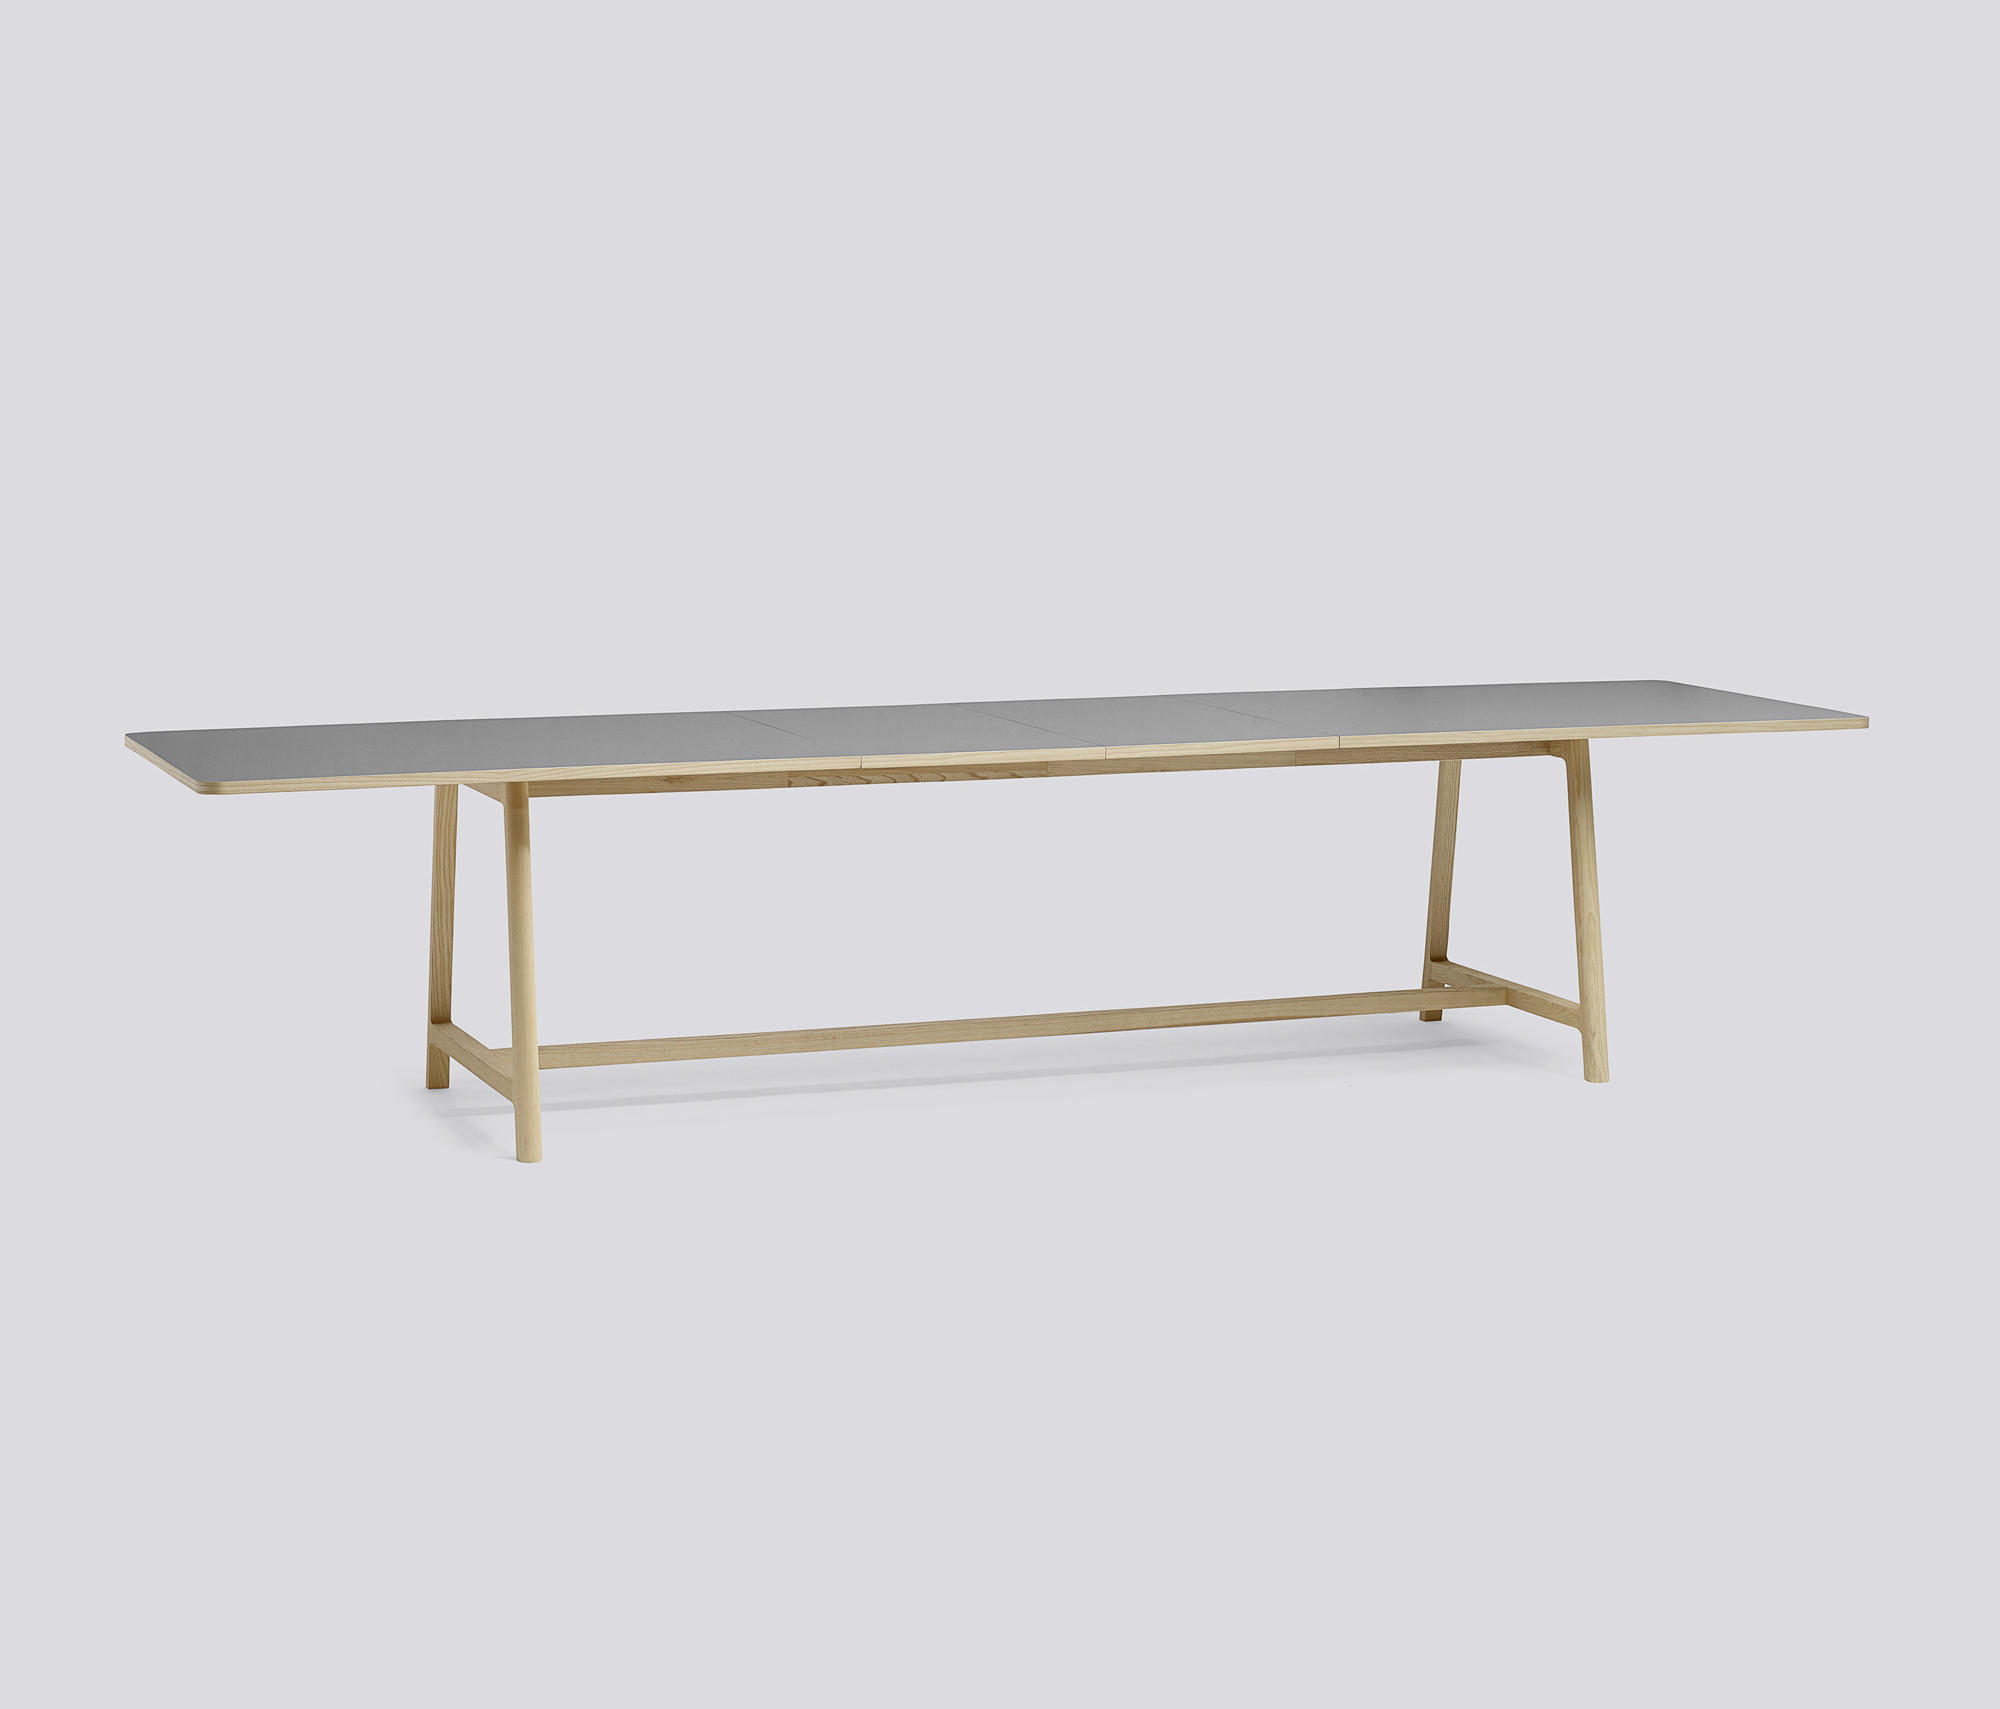 FRAME TABLE EXTENDABLE - Dining tables from Hay | Architonic